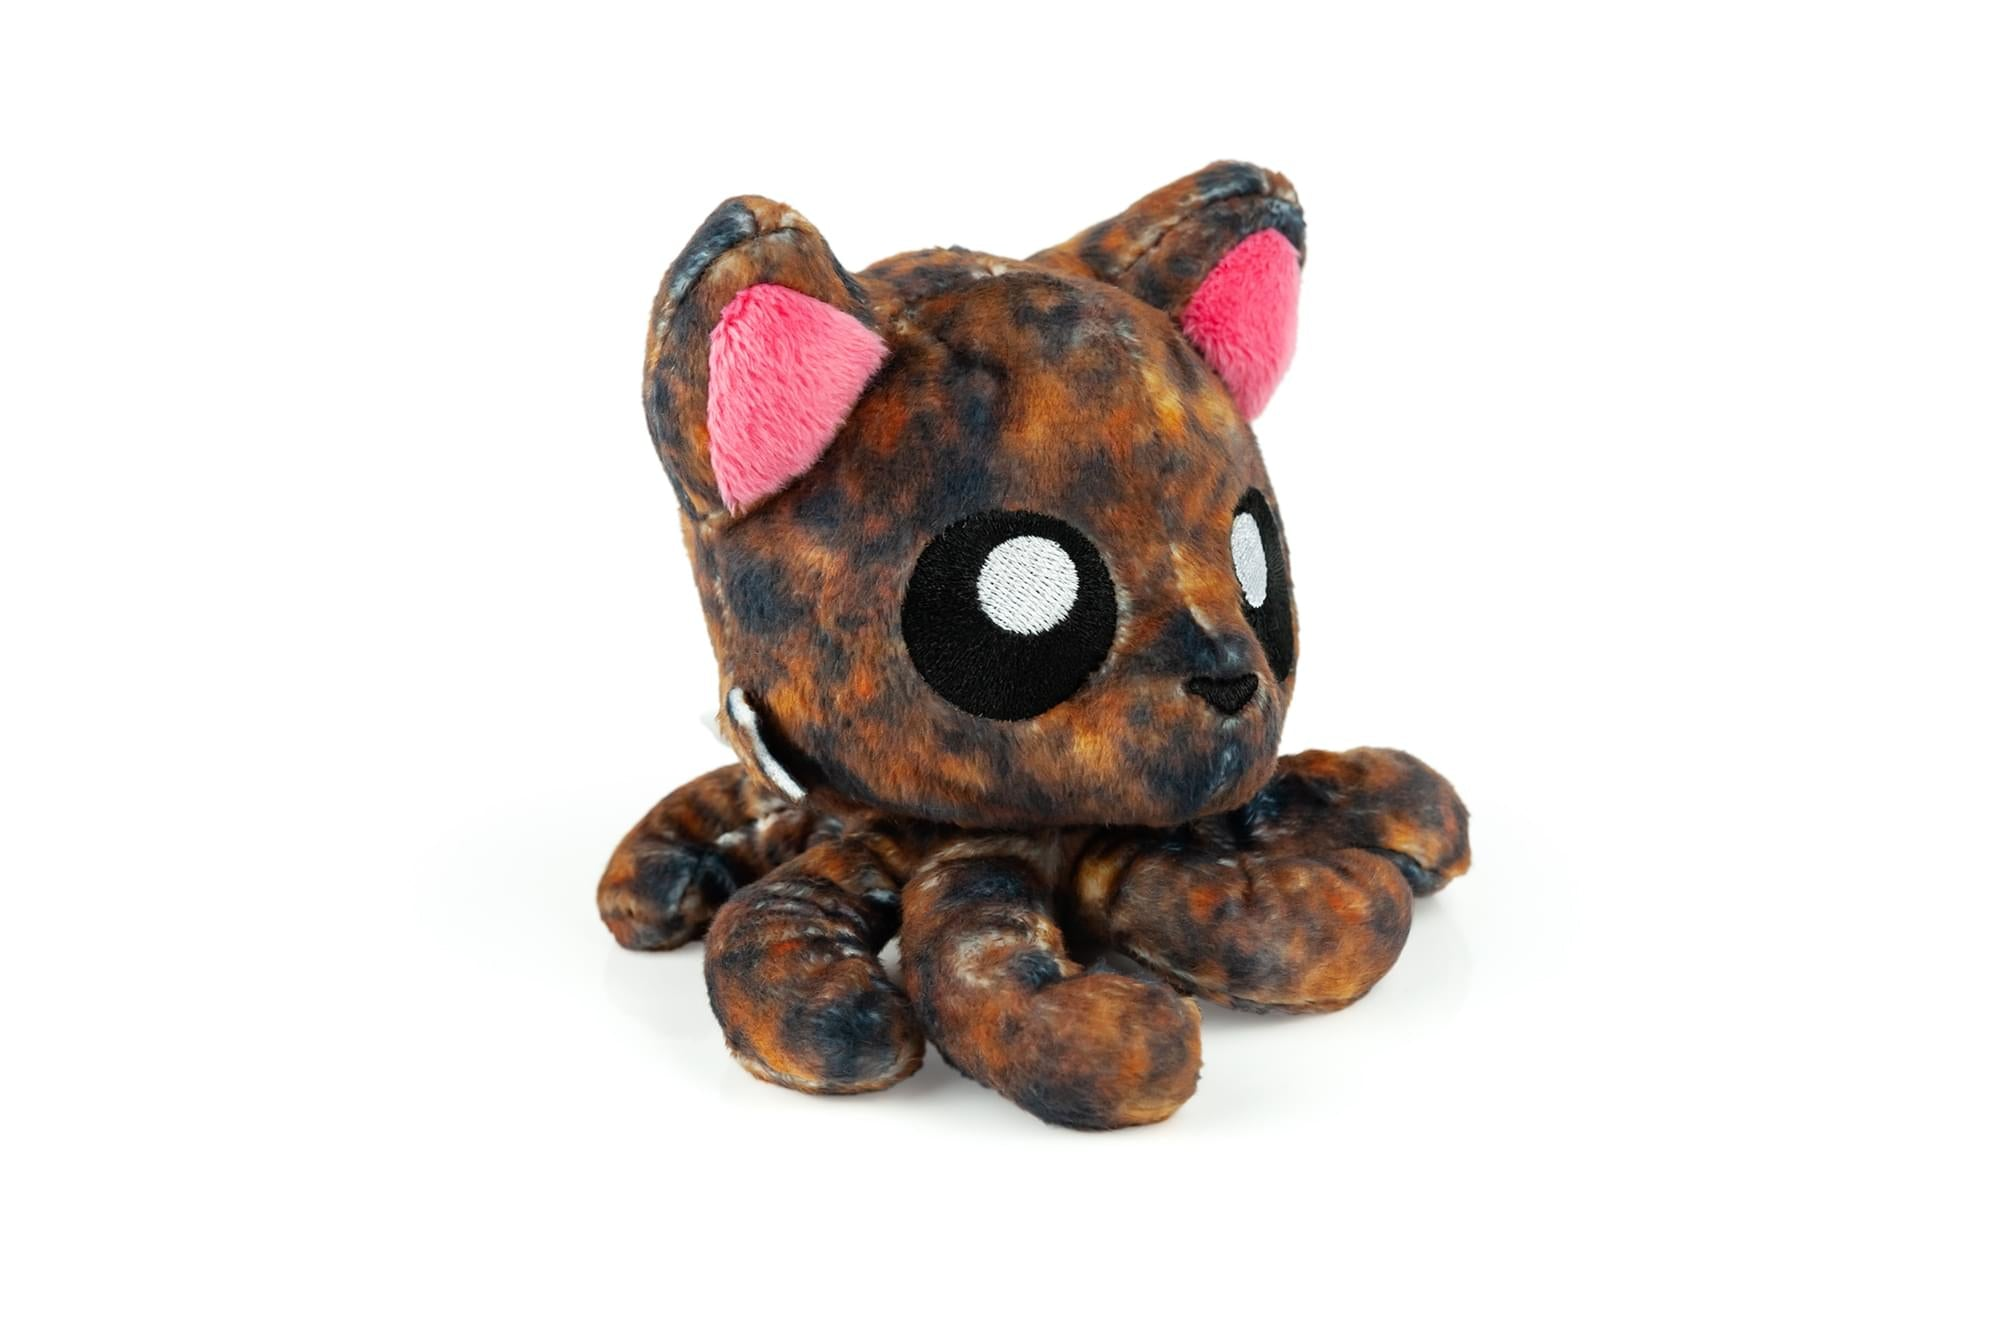 Tentacle Kitty Little Ones 4 Inch Plush Animal | Tortoise Shell